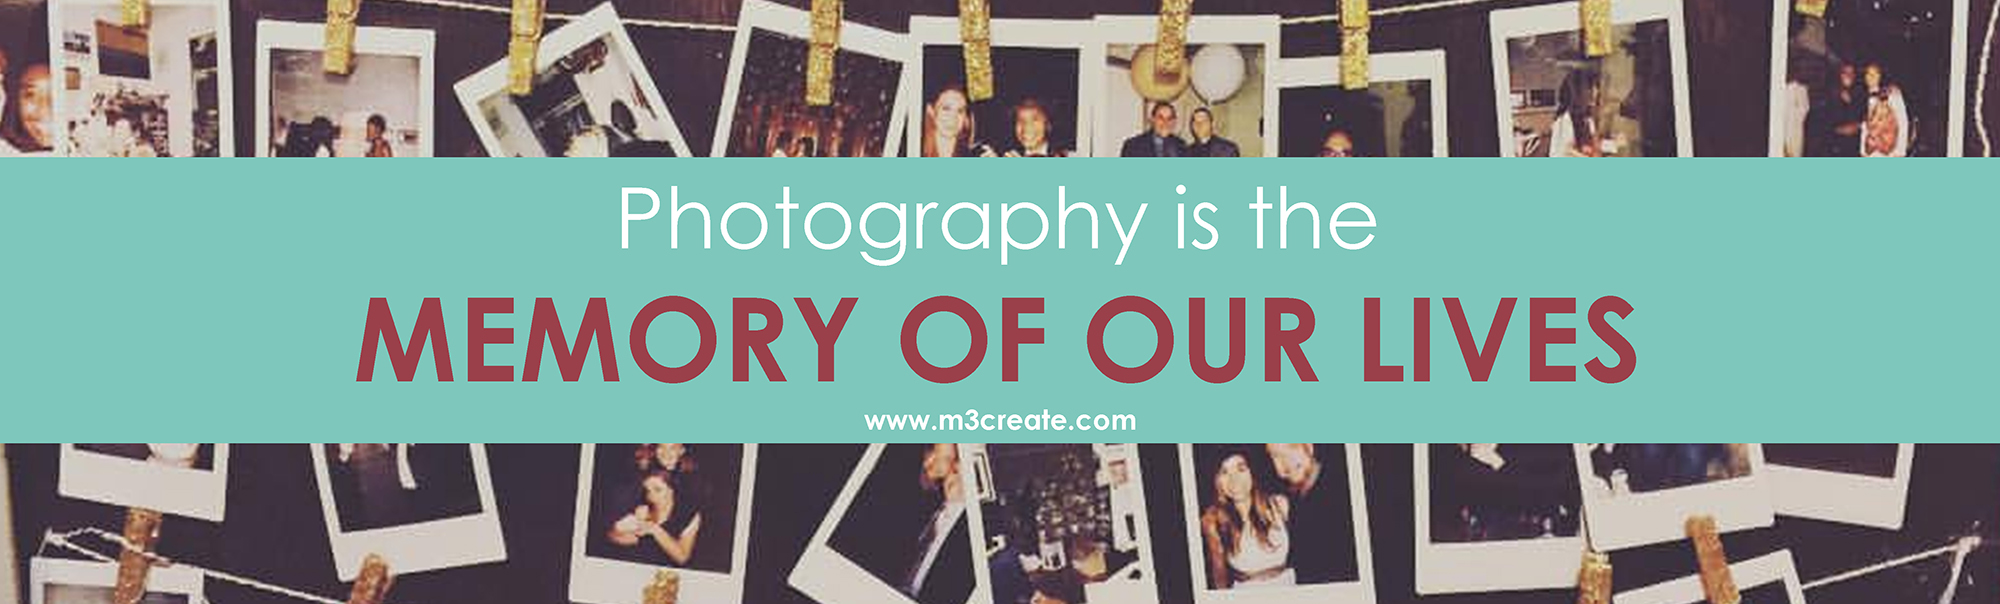 Photography is the Memory of our Lives Wedding Quote M3 Create